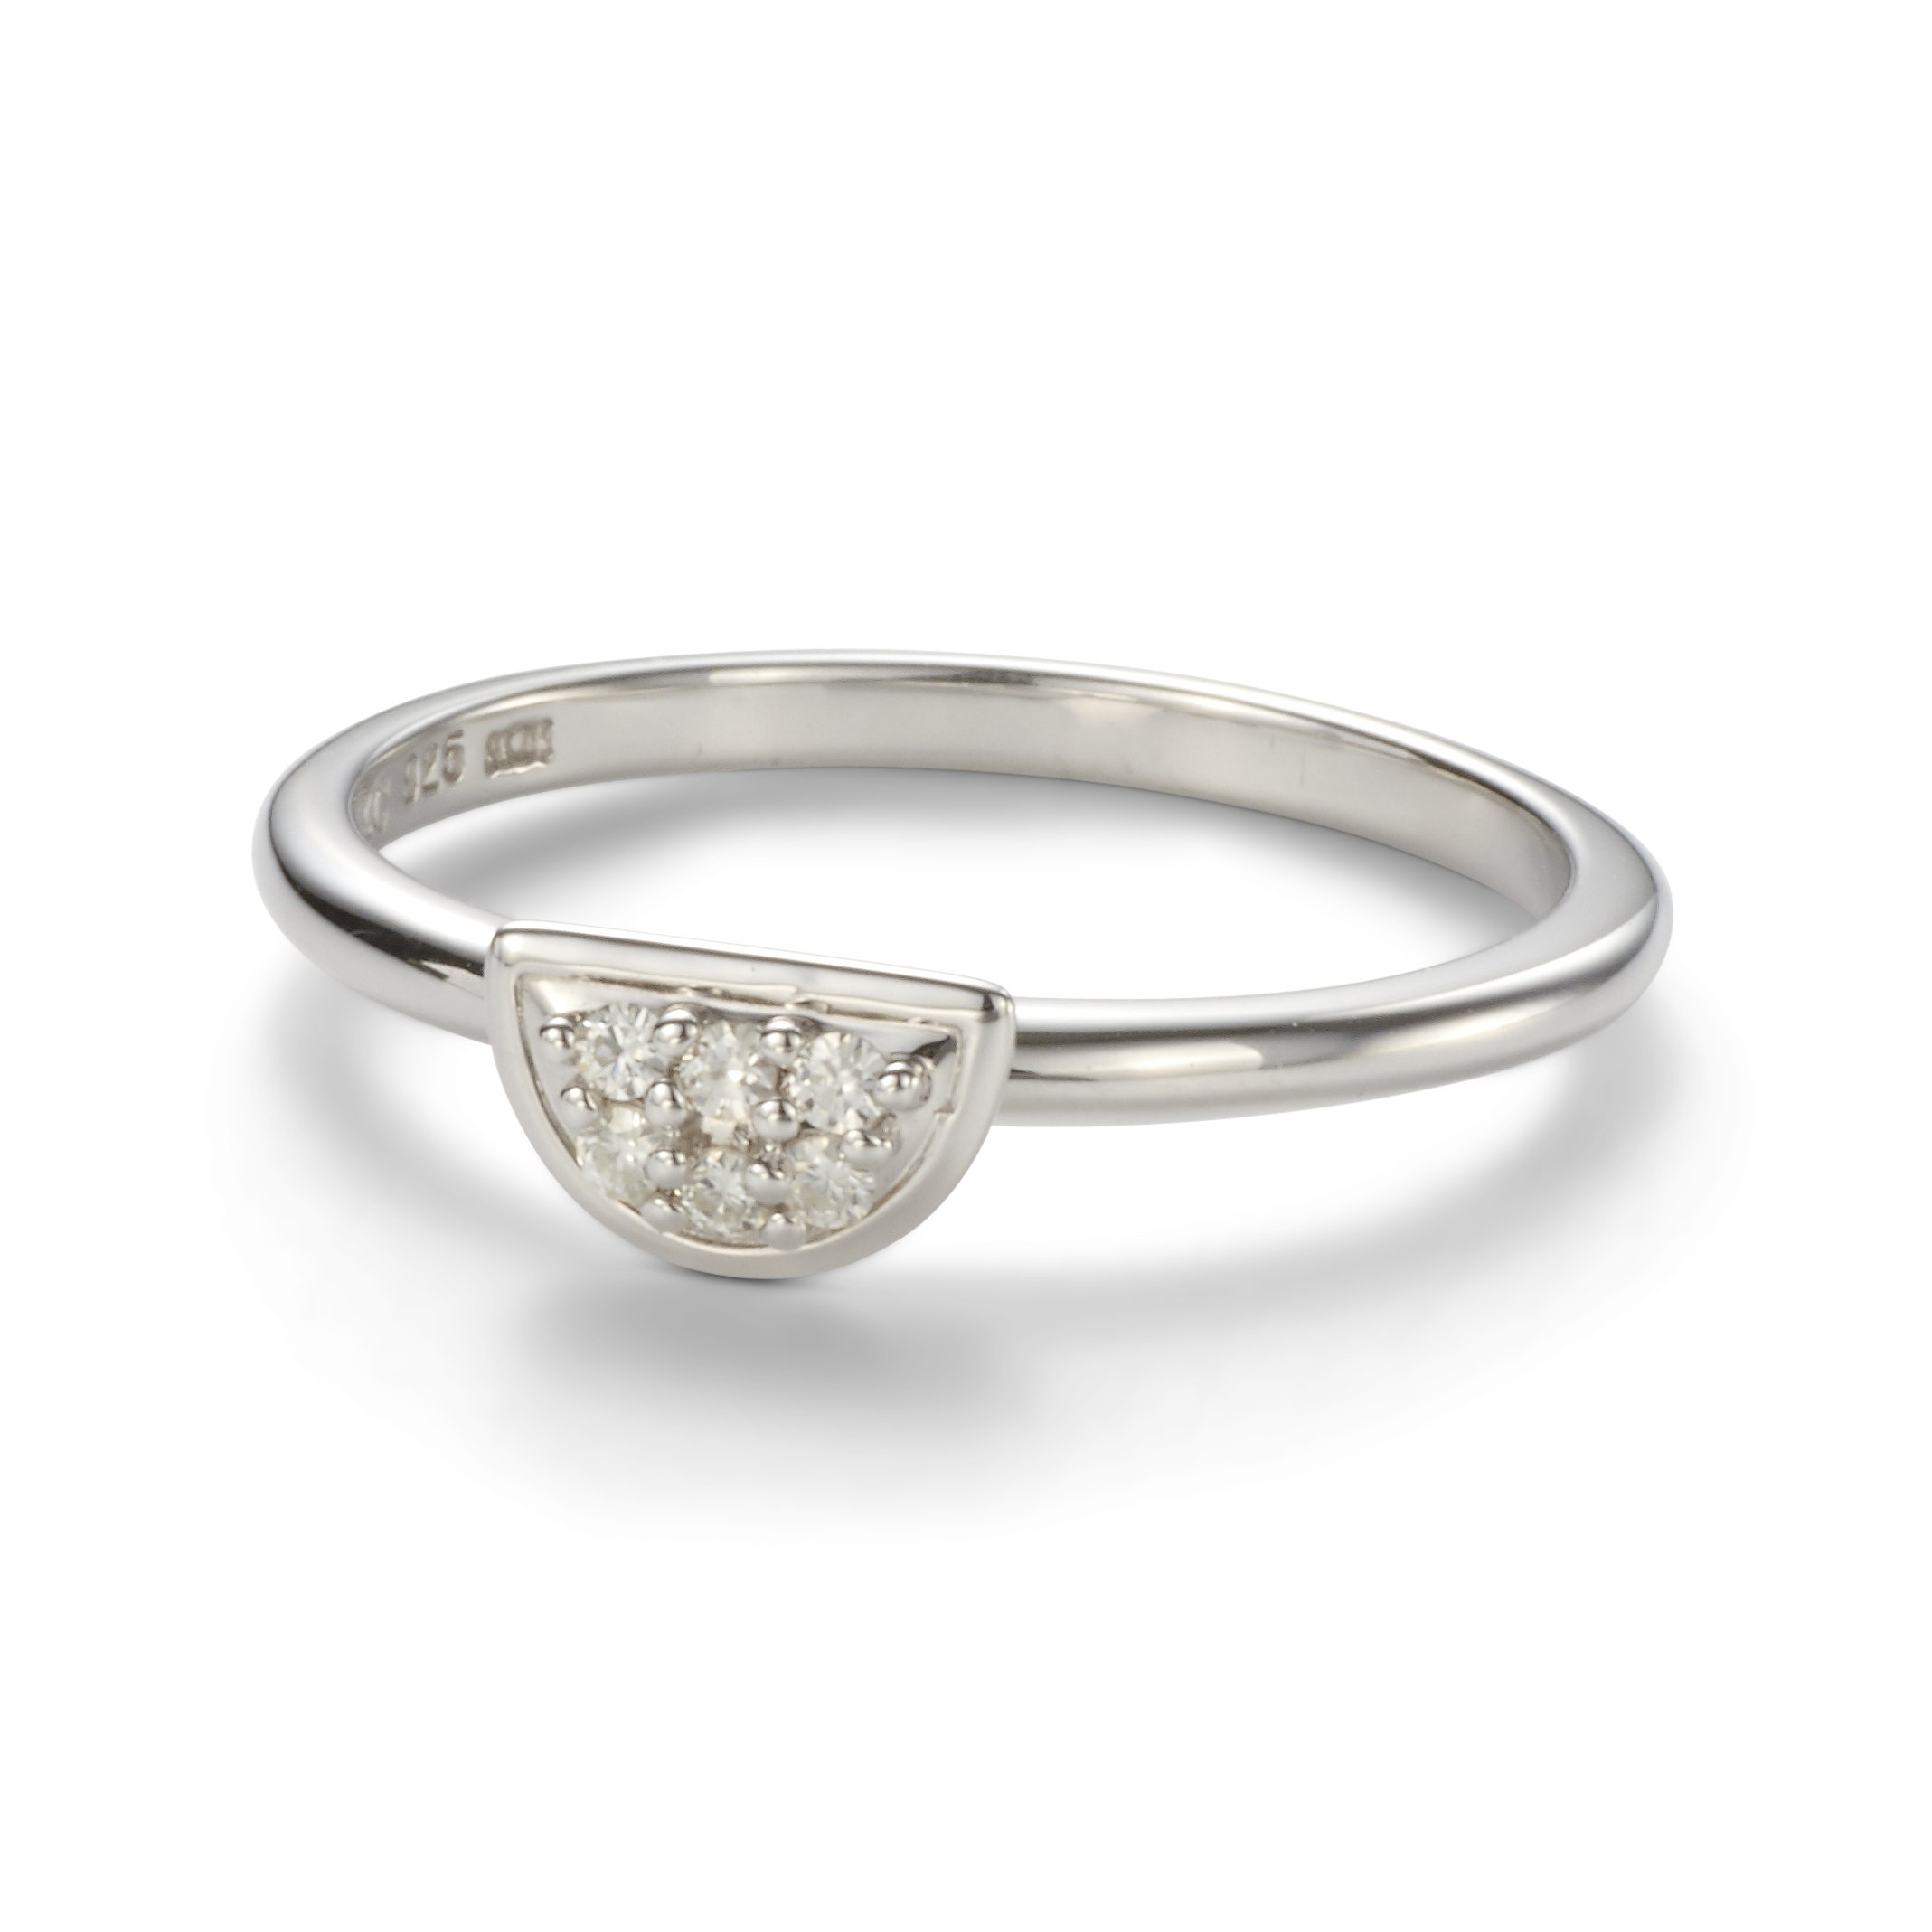 Forever Classic 1.4mm Moissanite Half Moon Pave Ring-size 7 by Charles & Colvard